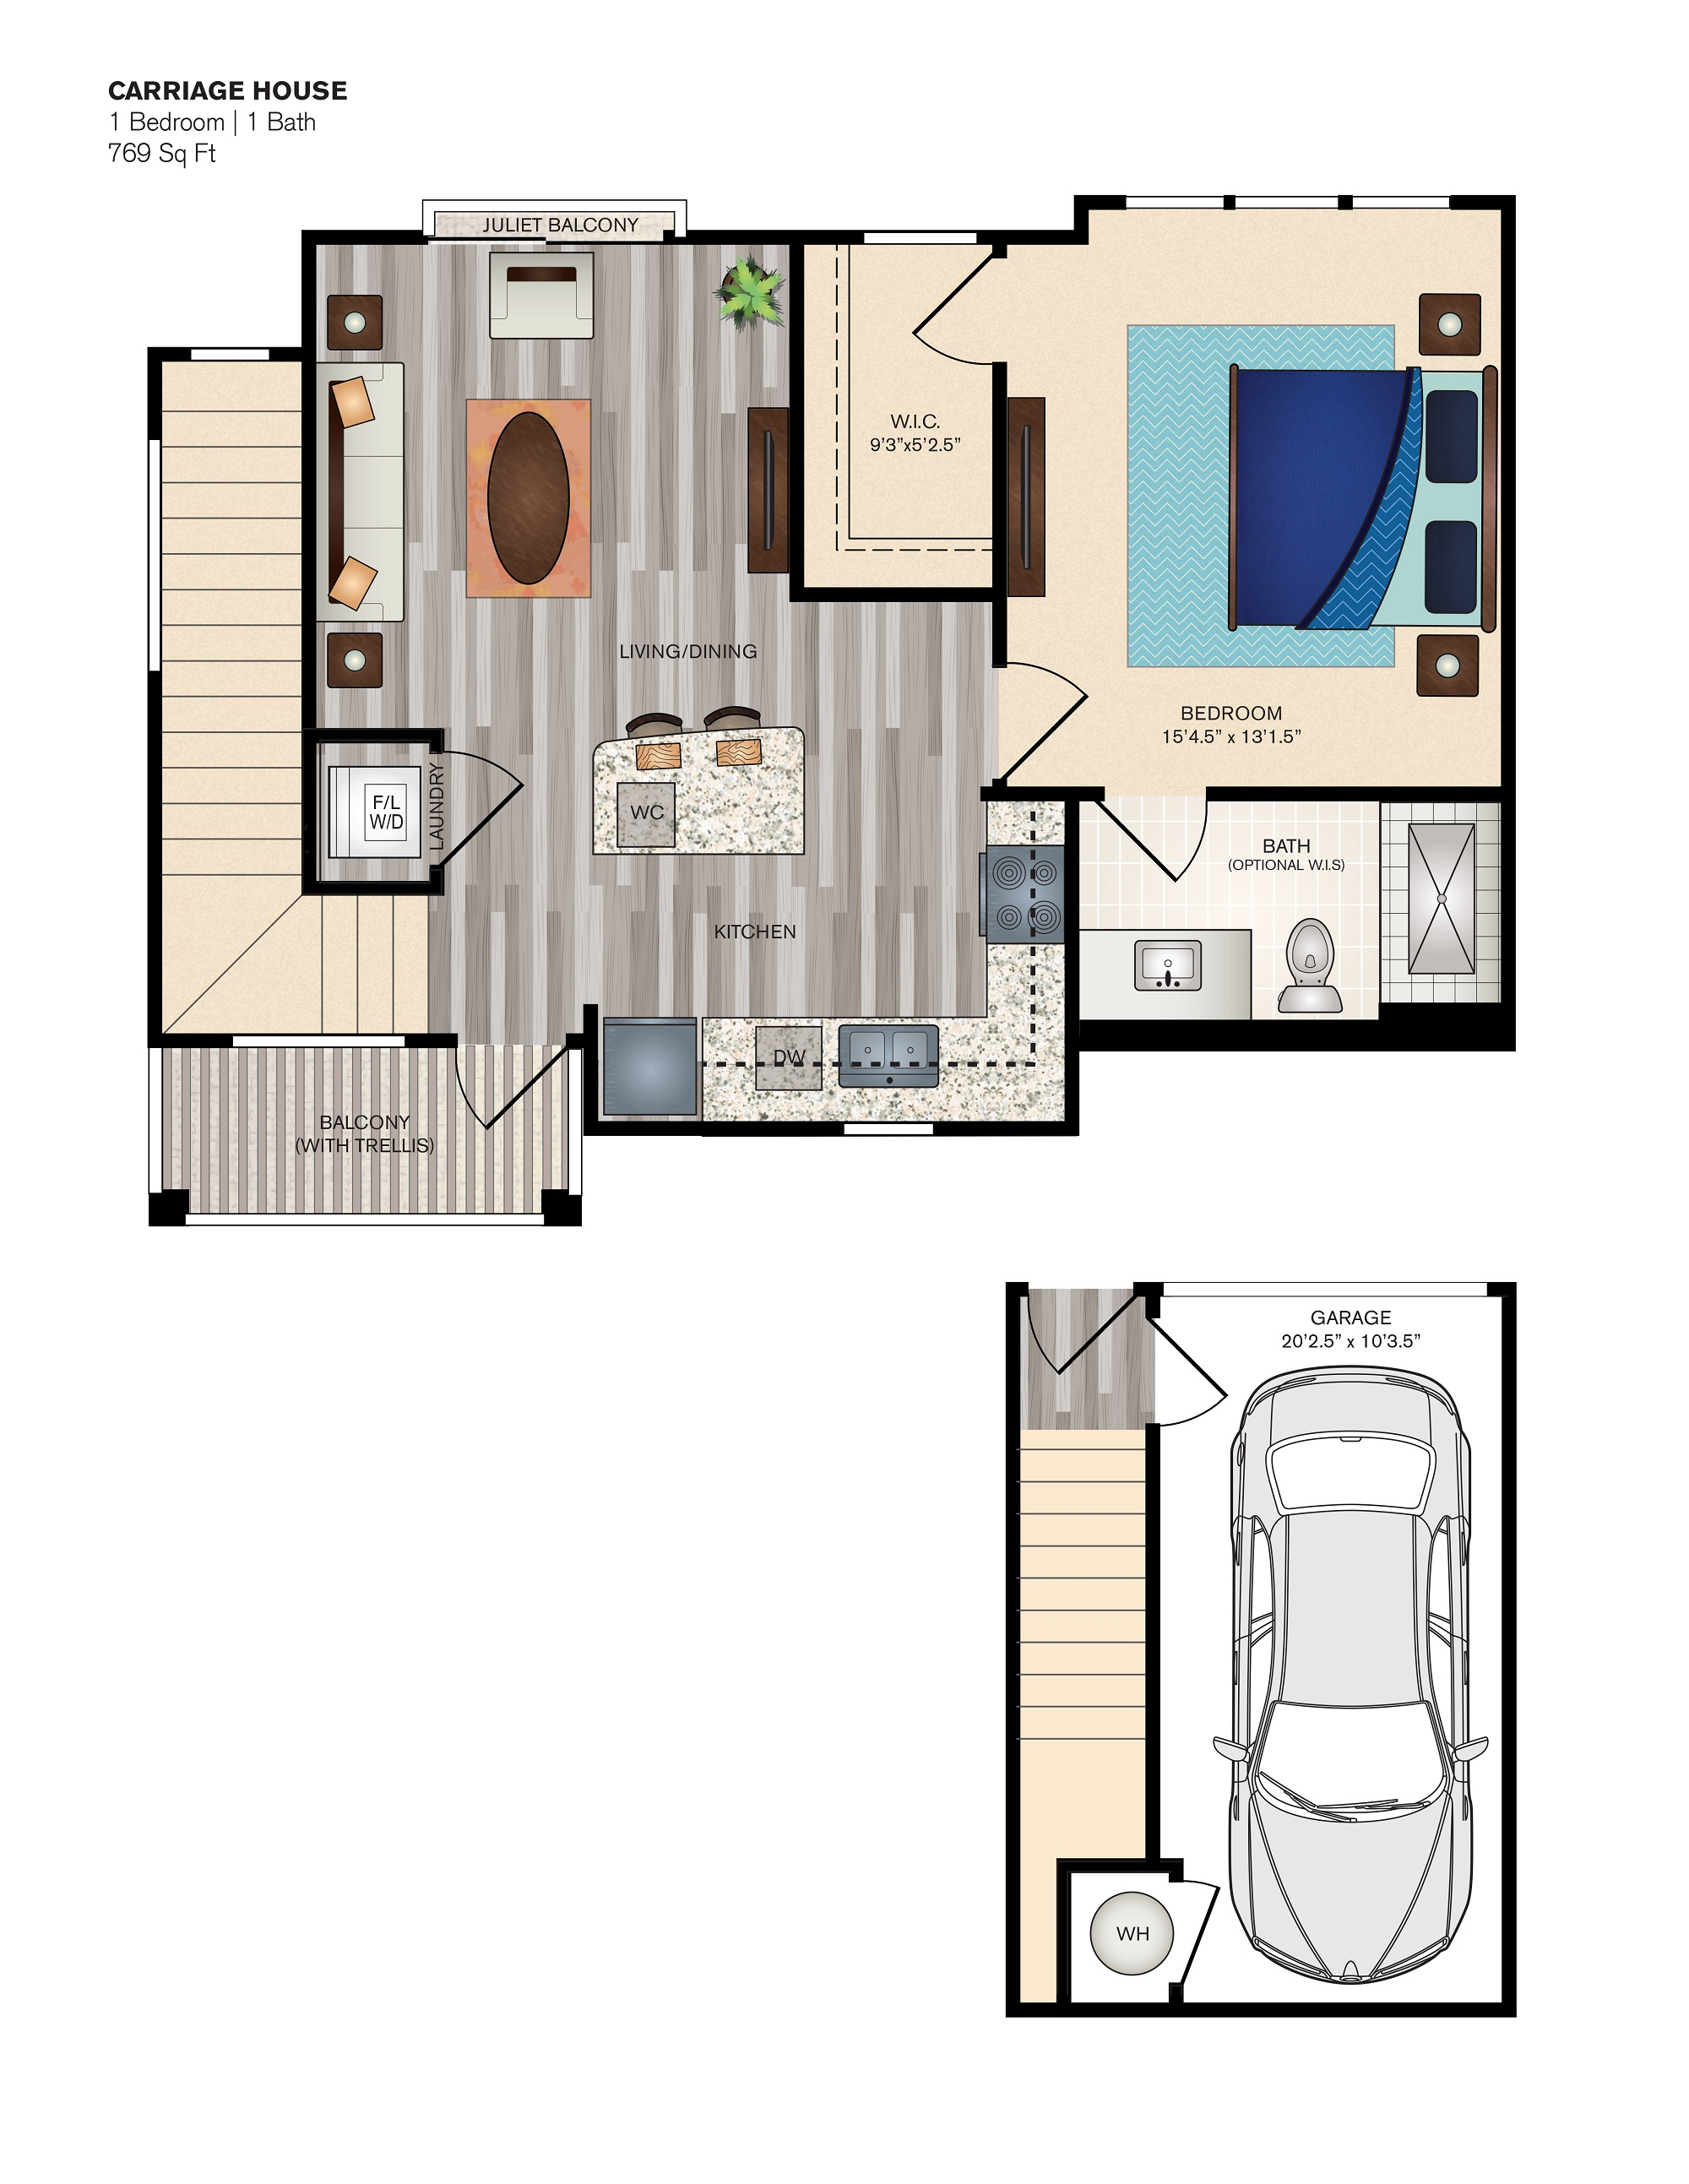 The Vue at Creve Coeur - Floorplan - Carriage House 1